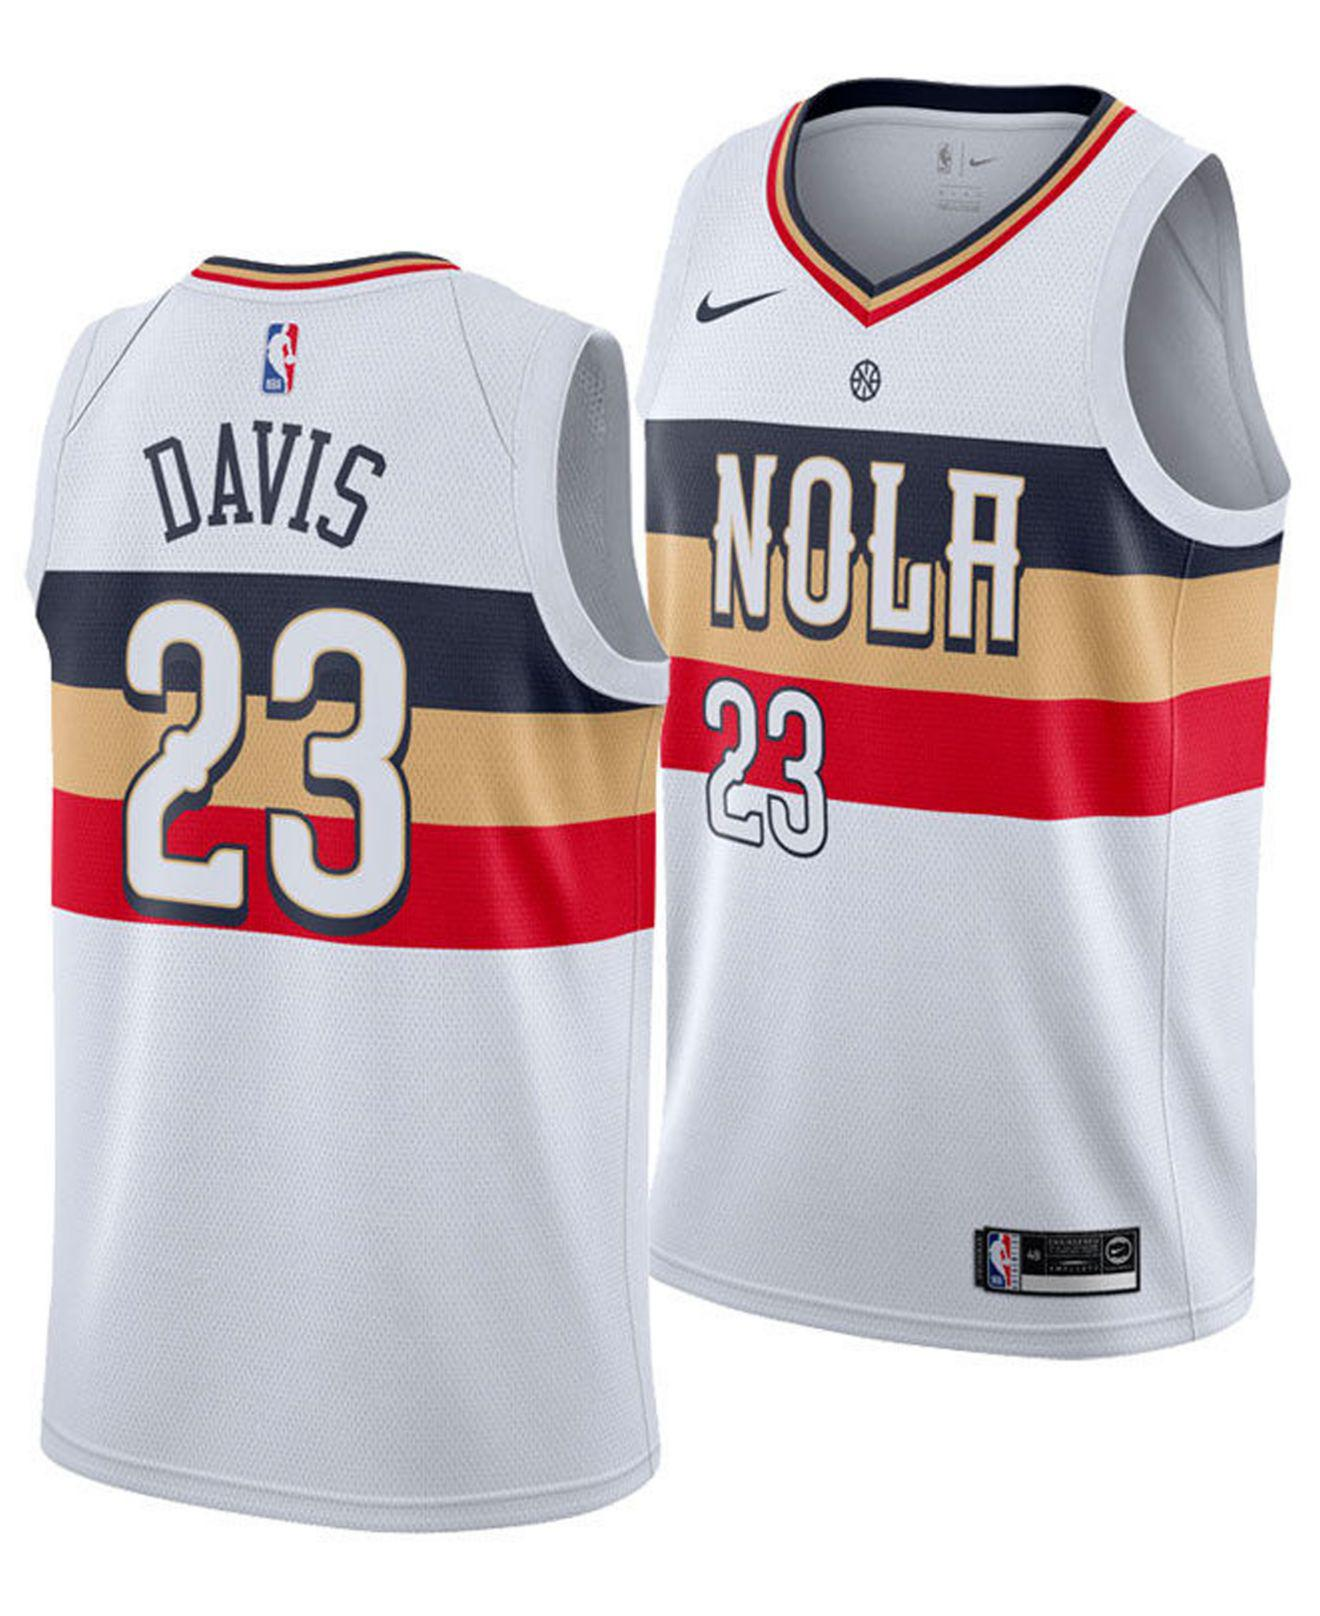 96f36df2258 ... new orleans pelicans baseball jersey Lyst - Nike Anthony Davis (nba)  Earned City Edition ...